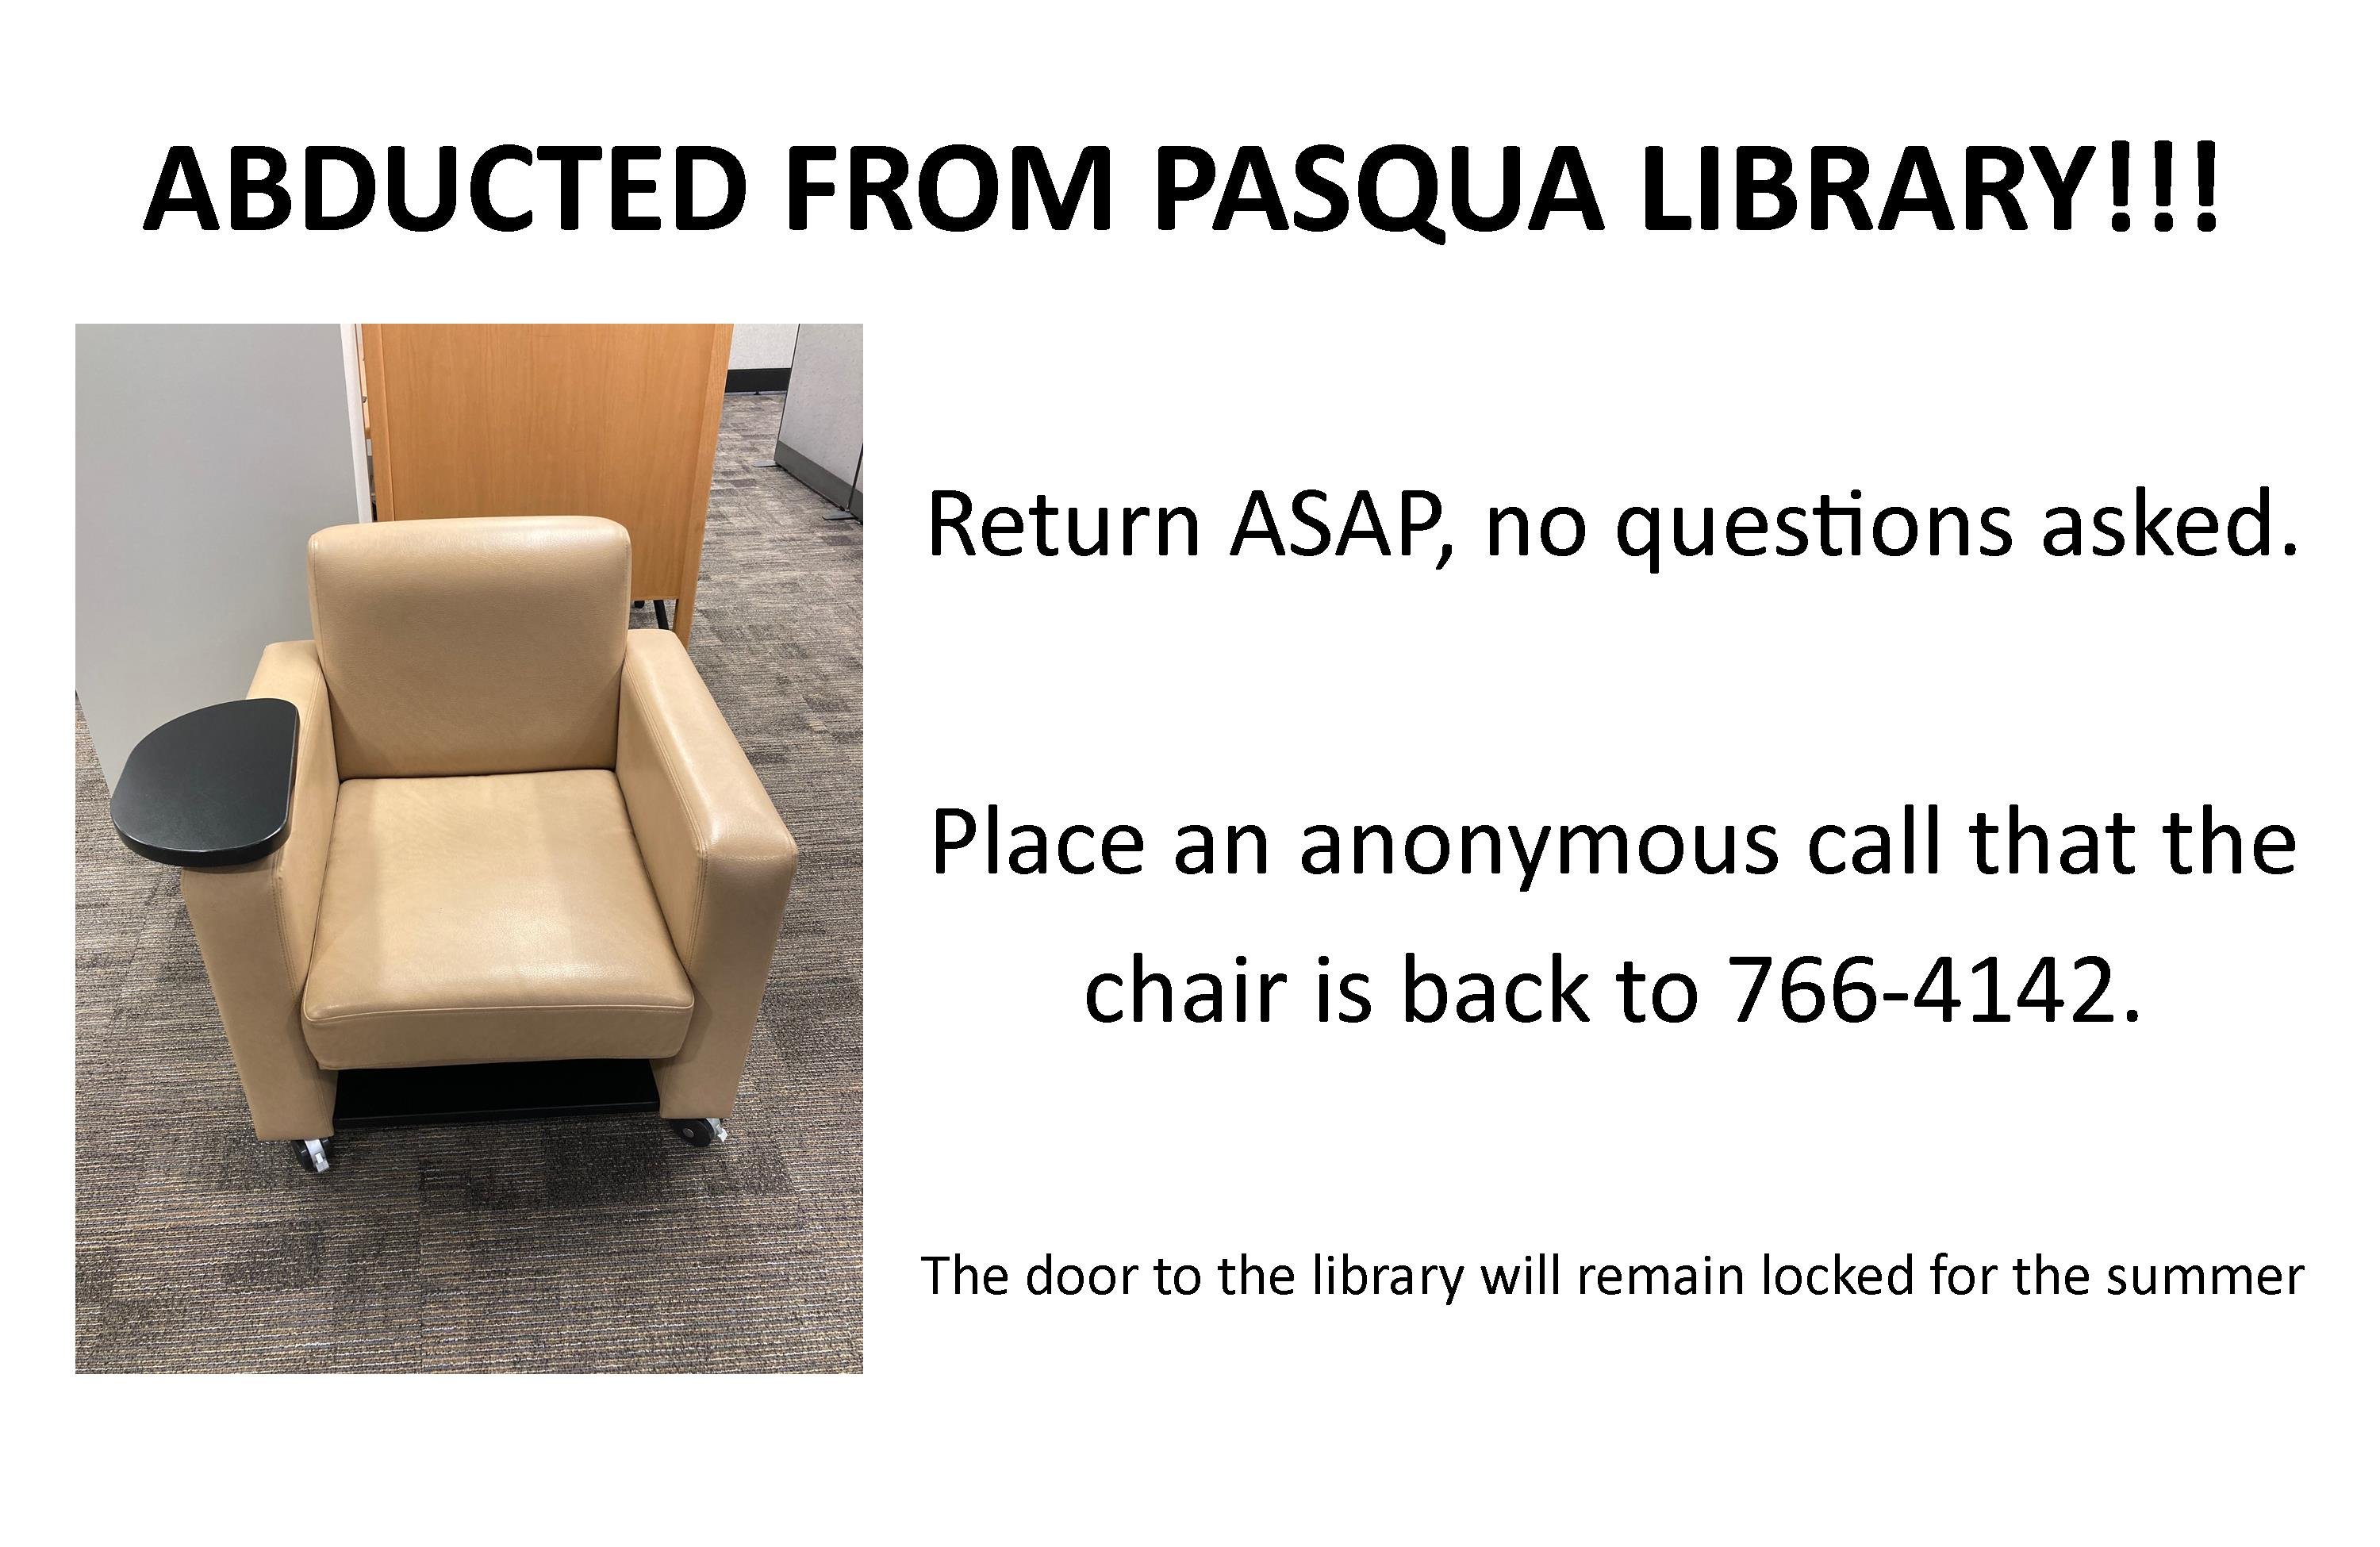 Missing Chair from Pasqua Library